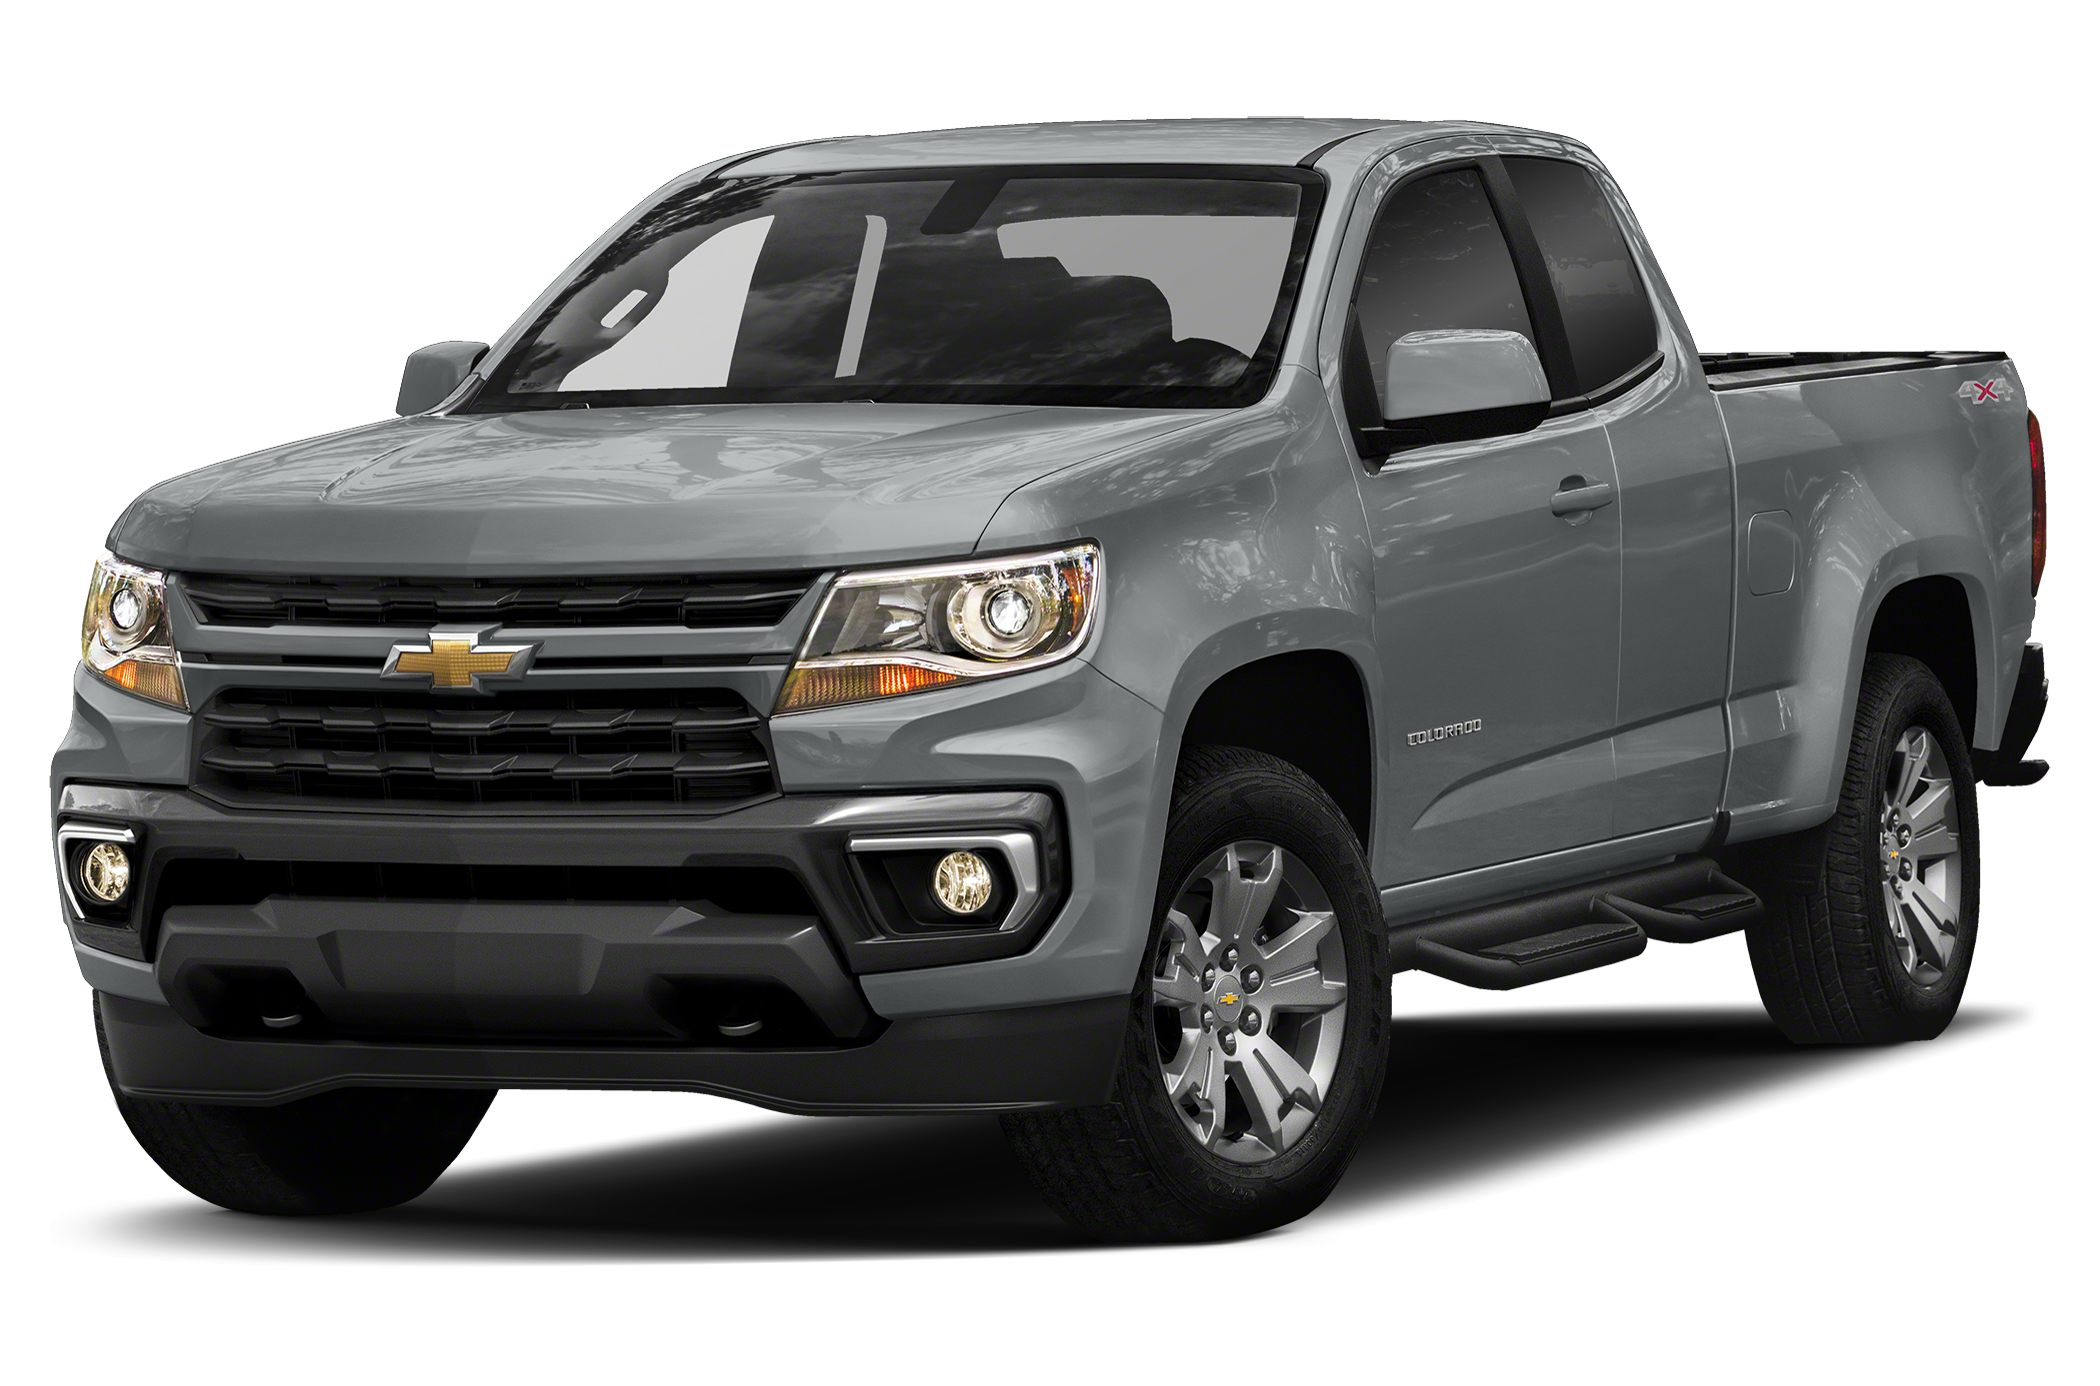 2021 Chevrolet Colorado Wt 4x4 Extended Cab 6 Ft Box 128 3 In Wb Specs And Prices